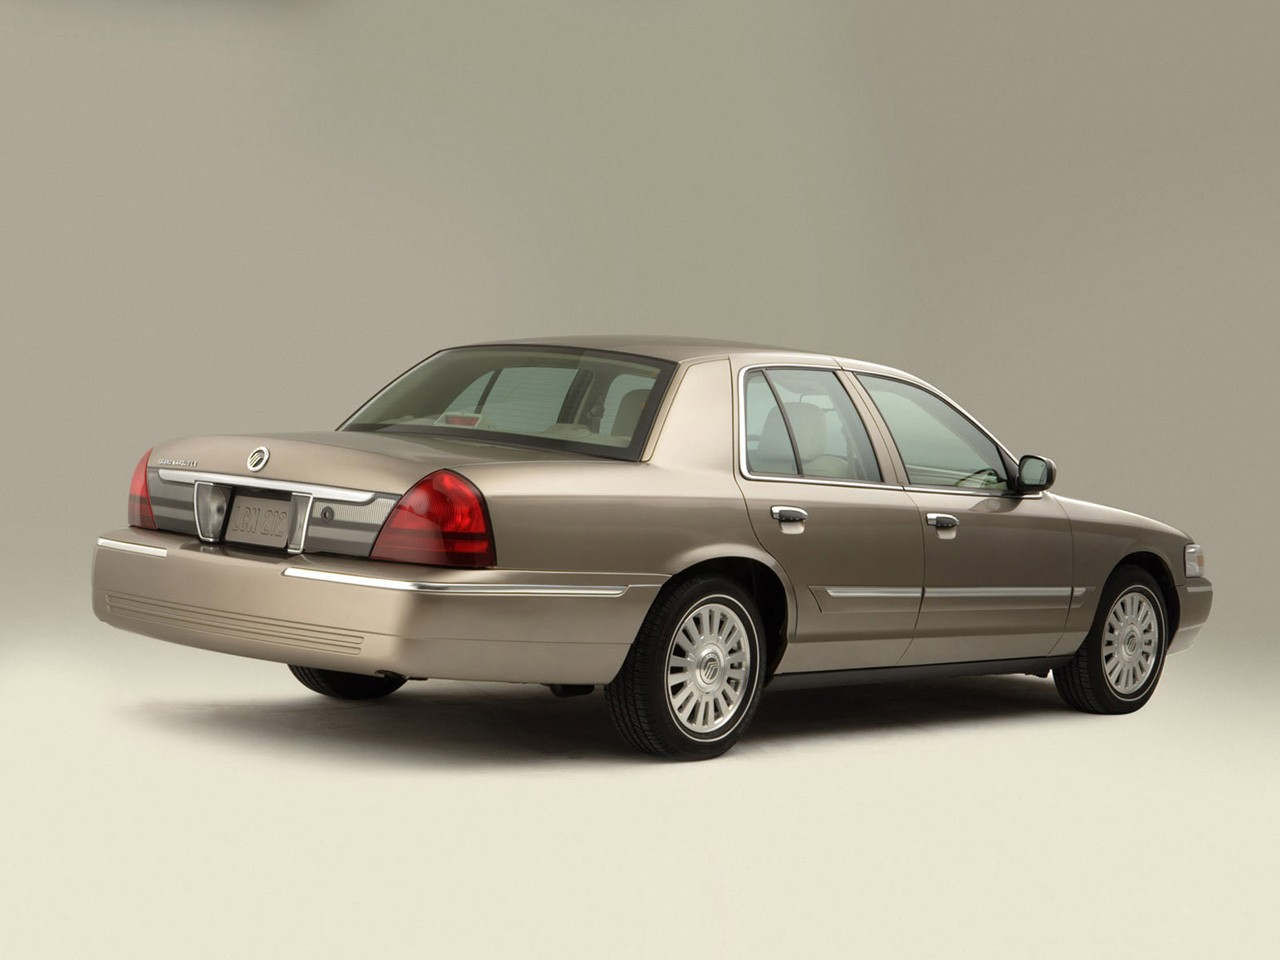 MERCURY Grand Marquis 3989_23 mercury grand marquis specs 2008, 2009, 2010, 2011 autoevolution Mercury Grand Marquis Engine Diagram at aneh.co